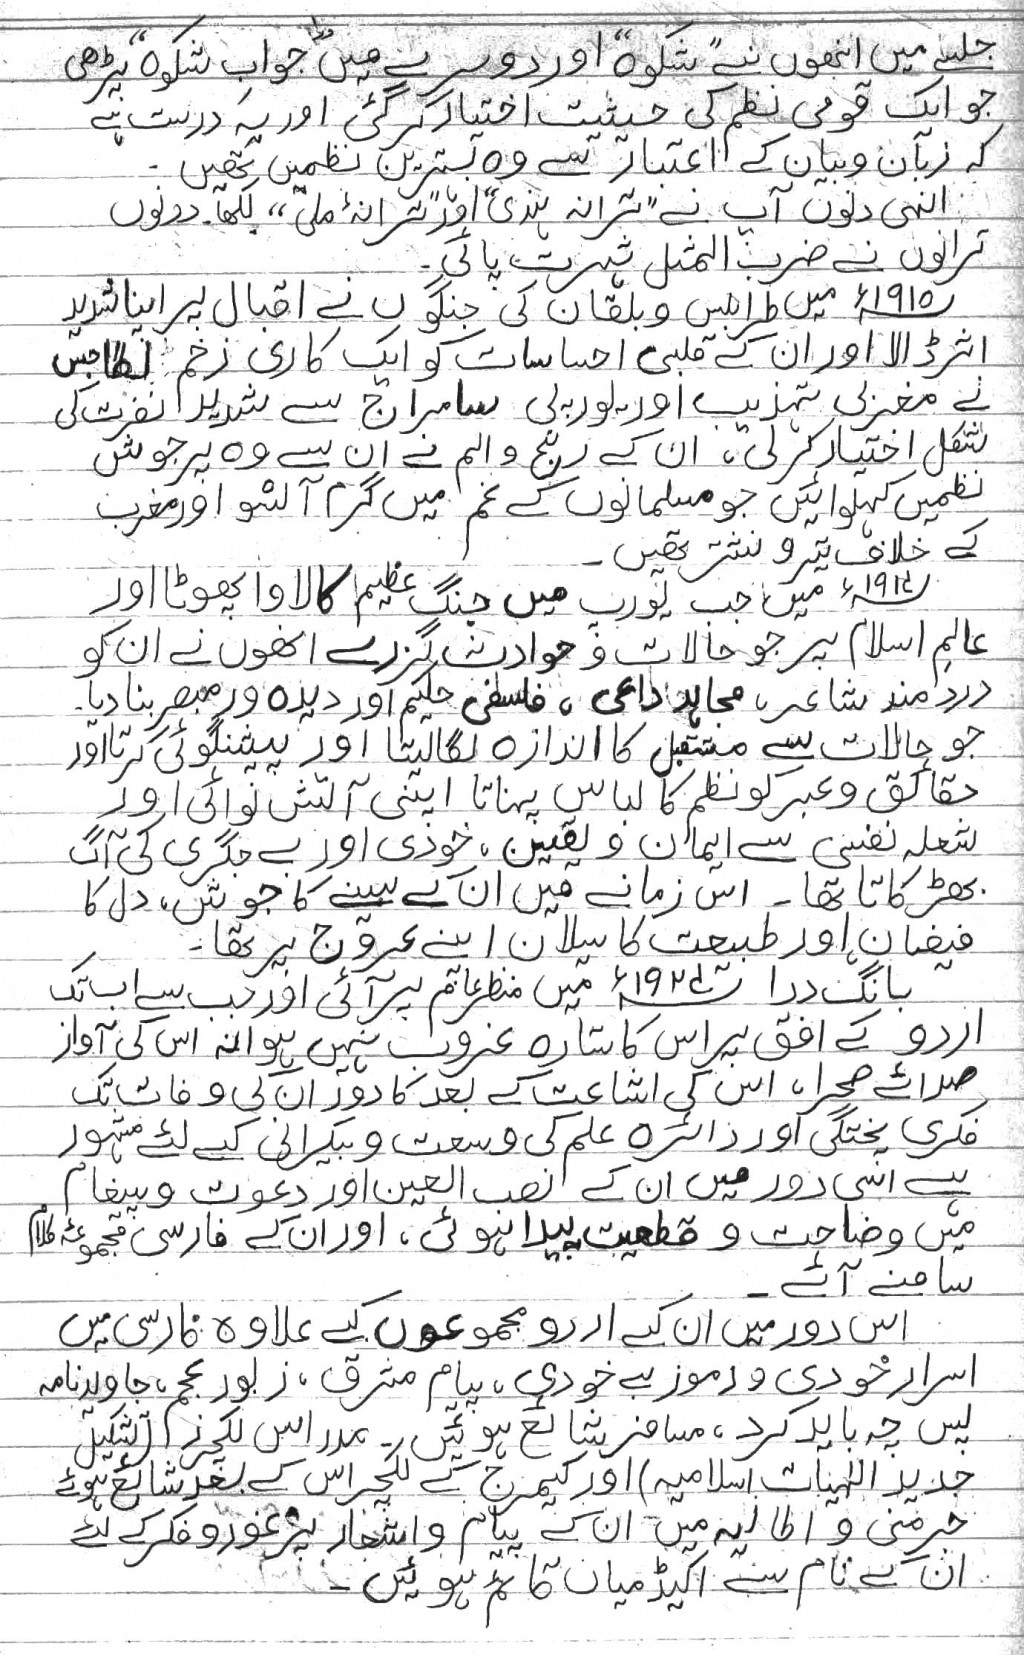 004 Urdu Essay Allama Iqbal Example Dreaded On In For Class 10 With Poetry Ka Shaheen Headings And Large